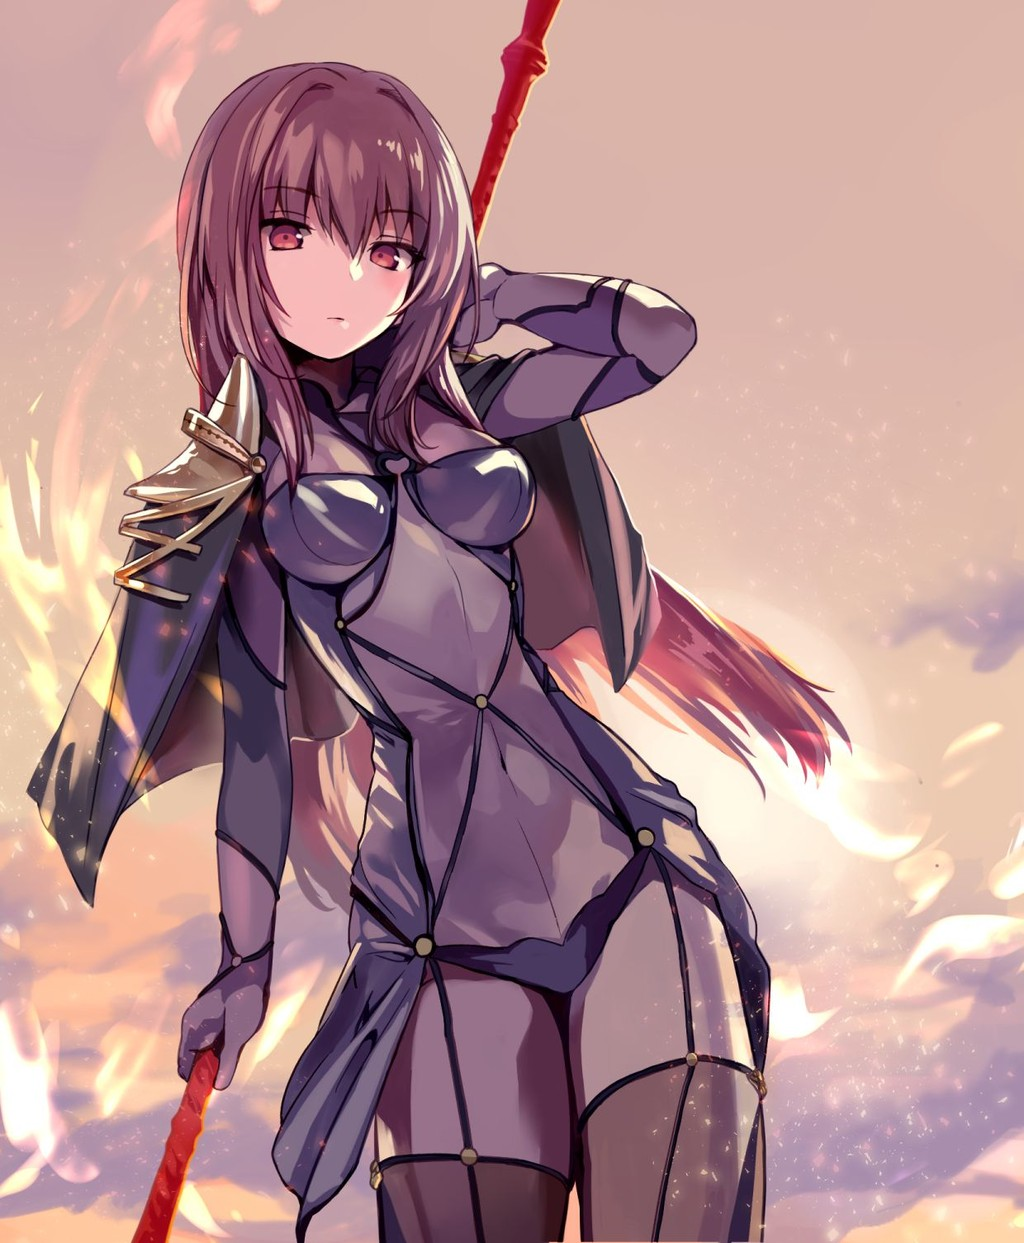 scathach_(fategrand_order)047